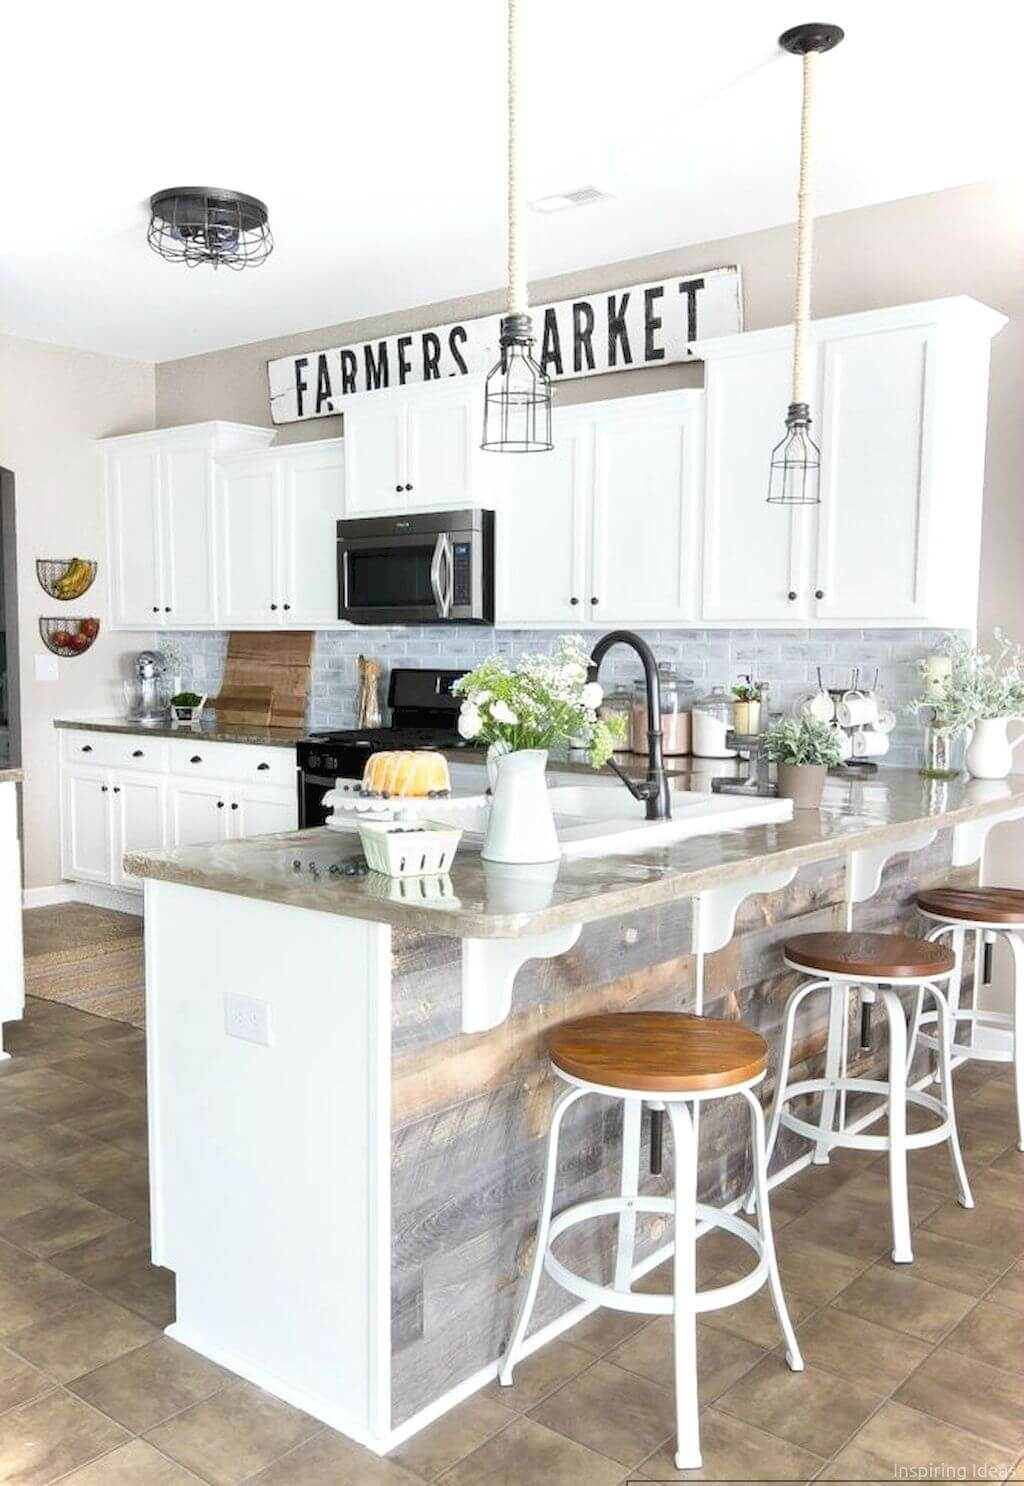 grayscale and white cabinets with black accents - White Farmhouse Kitchen